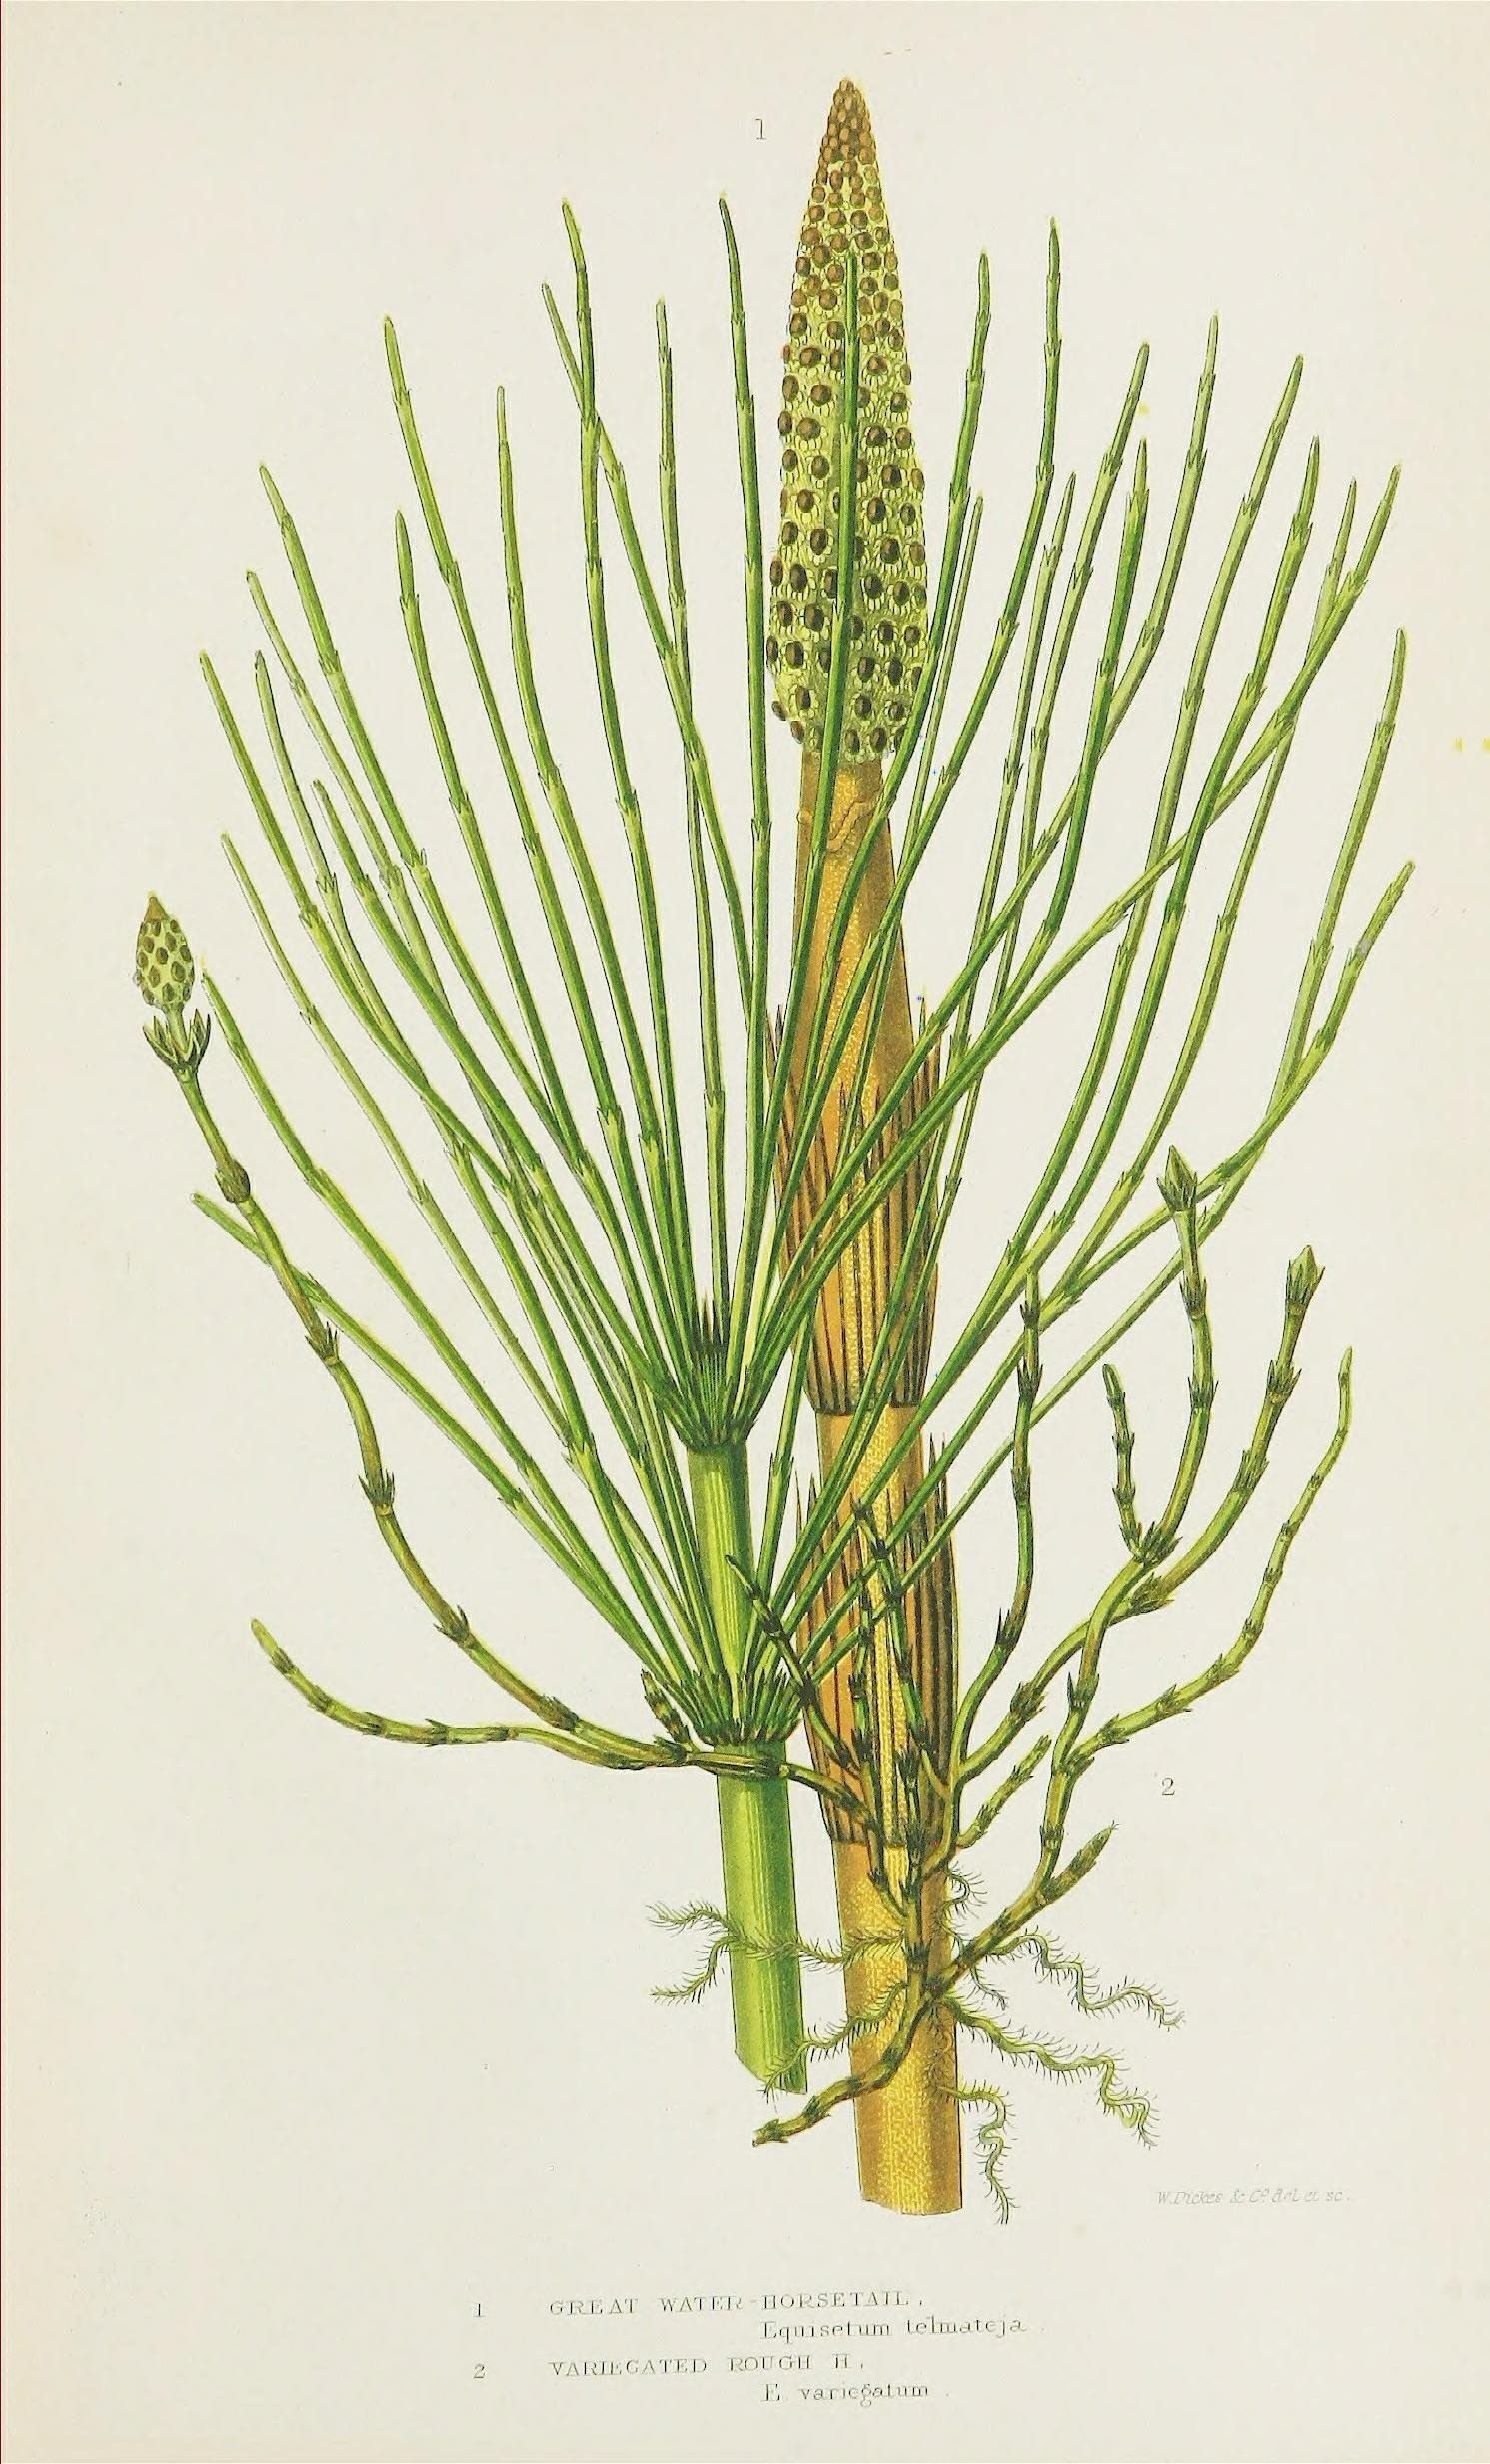 Image of Great Horsetail